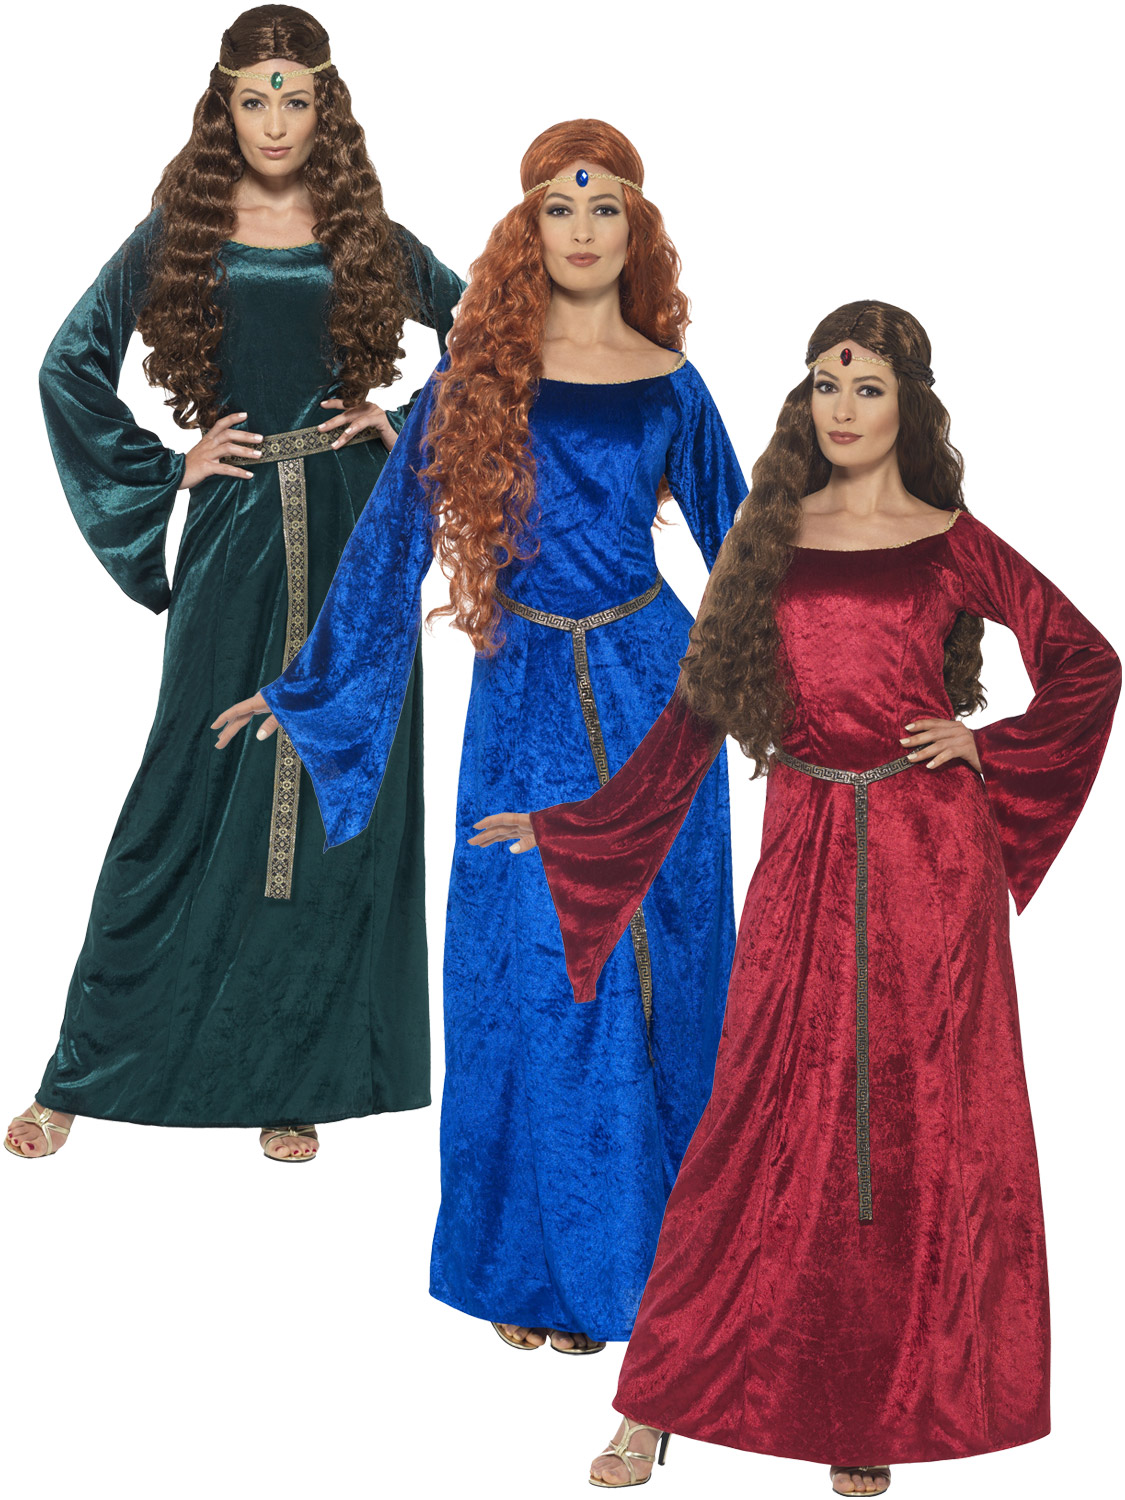 Ladies medieval maid costume adults robin hood maiden fancy dress transform yourself in an medieval maiden with this ladies fancy dress costume ideal if you are going to a medieval themed party solutioingenieria Choice Image